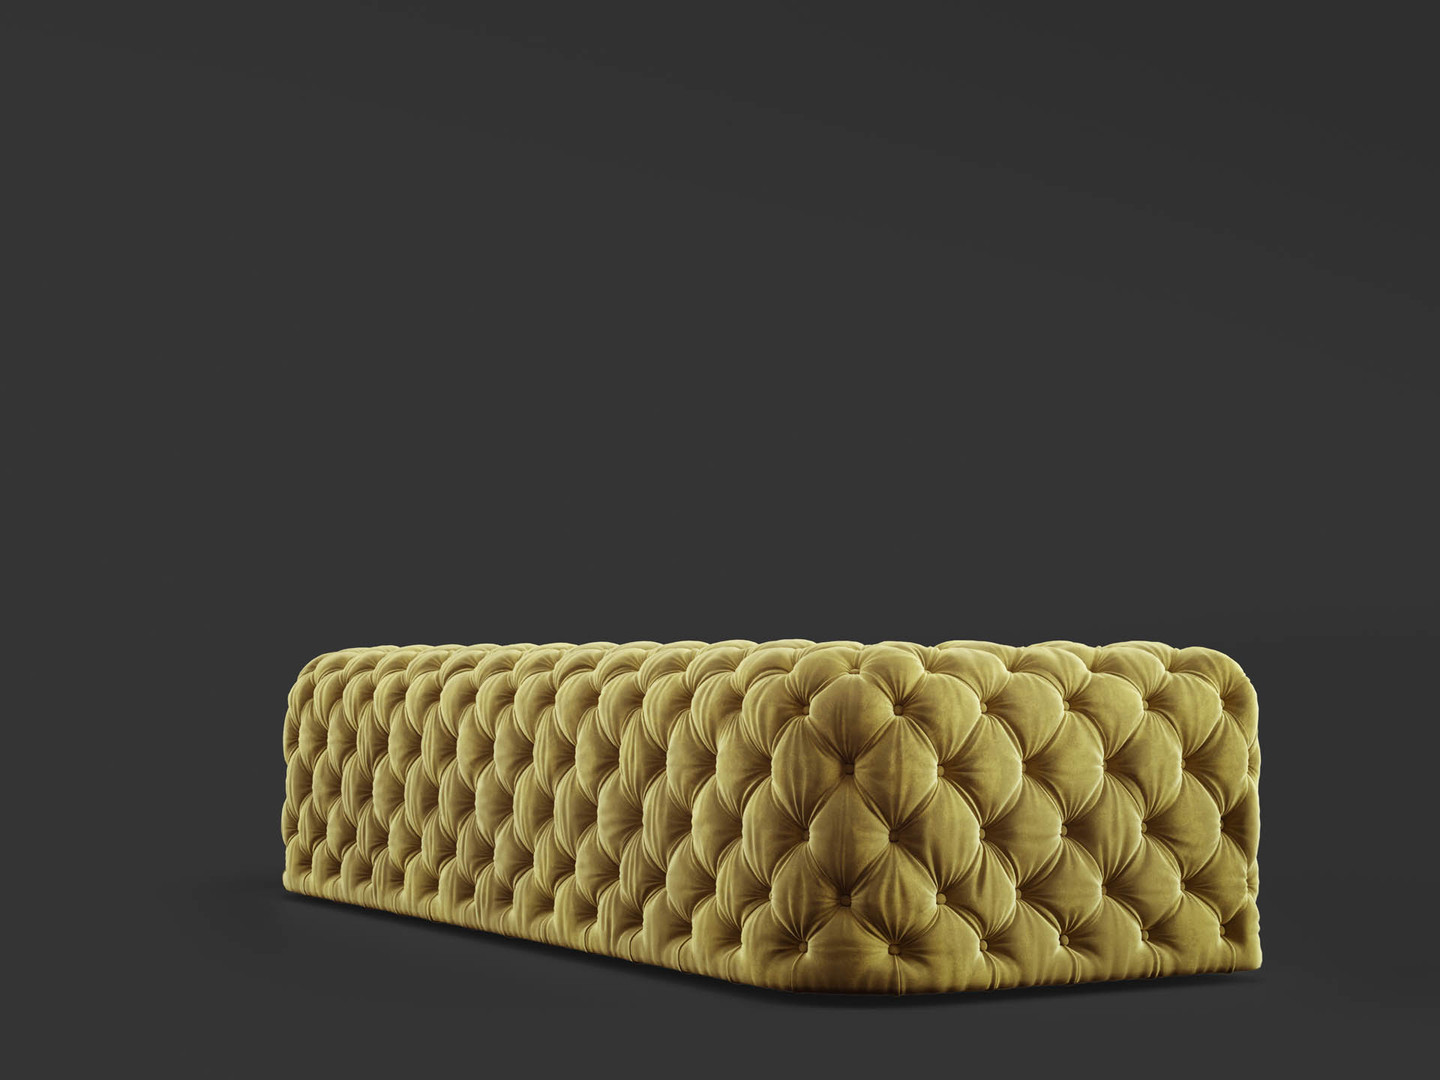 Tufted Sofa 5 MediaLab ProductViz.jpg